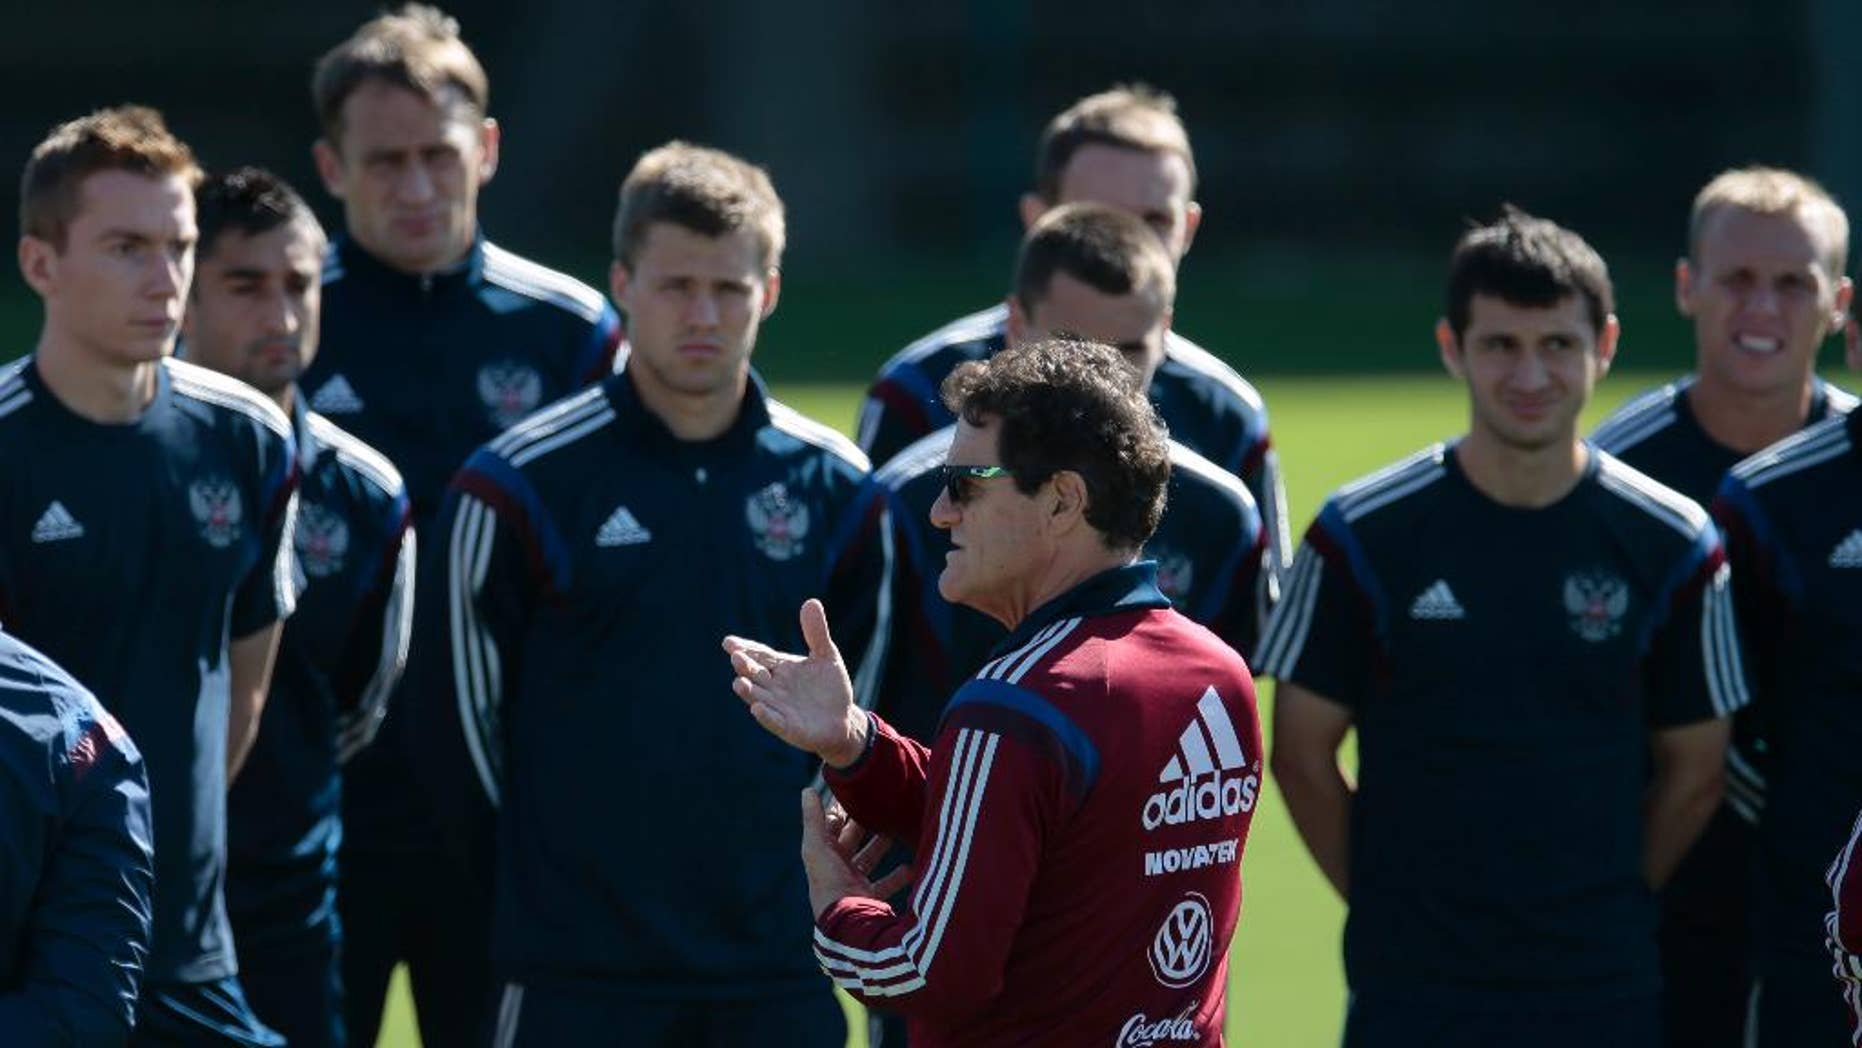 Fabio Capello, Italian coach of Russian national soccer team, center, speaks to his players during a training session in Itu, Brazil, on Thursday, June 19, 2014. Russia will play next game against Belgium in group H of the 2014 soccer World Cup. (AP Photo/Ivan Sekretarev)